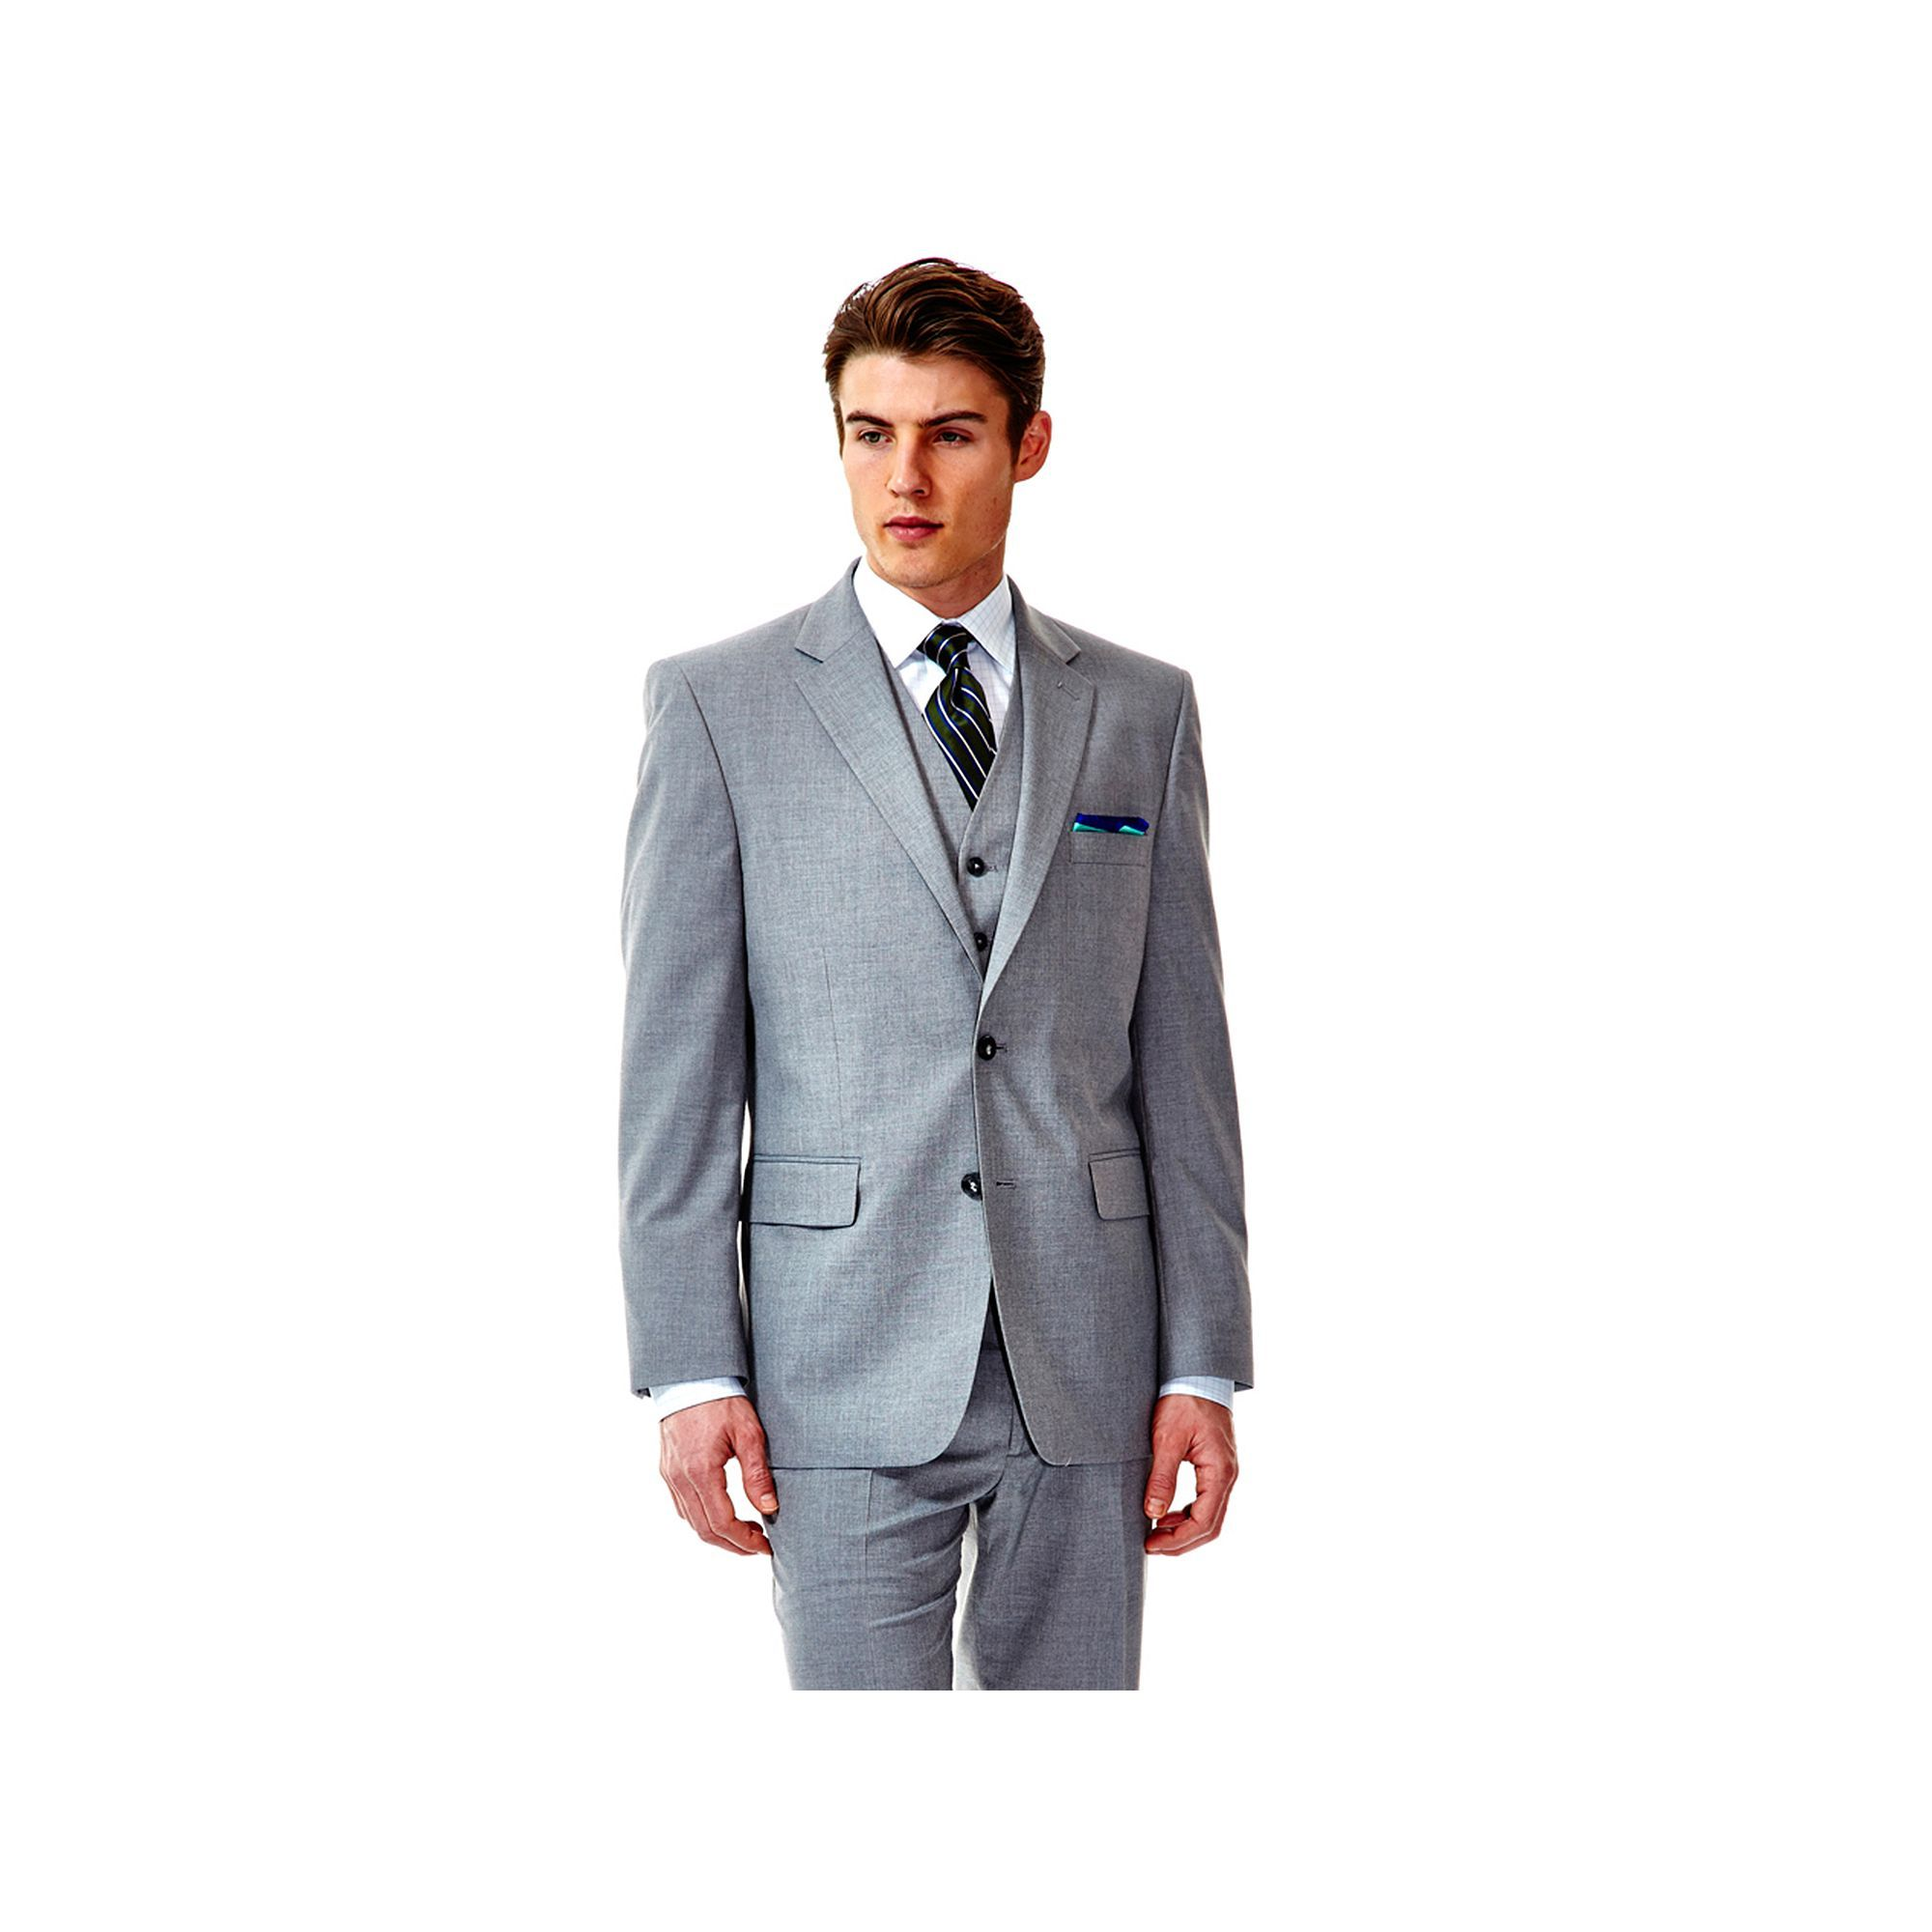 s two fit polyester men piece product shipping suit light today gray overstock mens slim verno shoes clothing viscose grey free